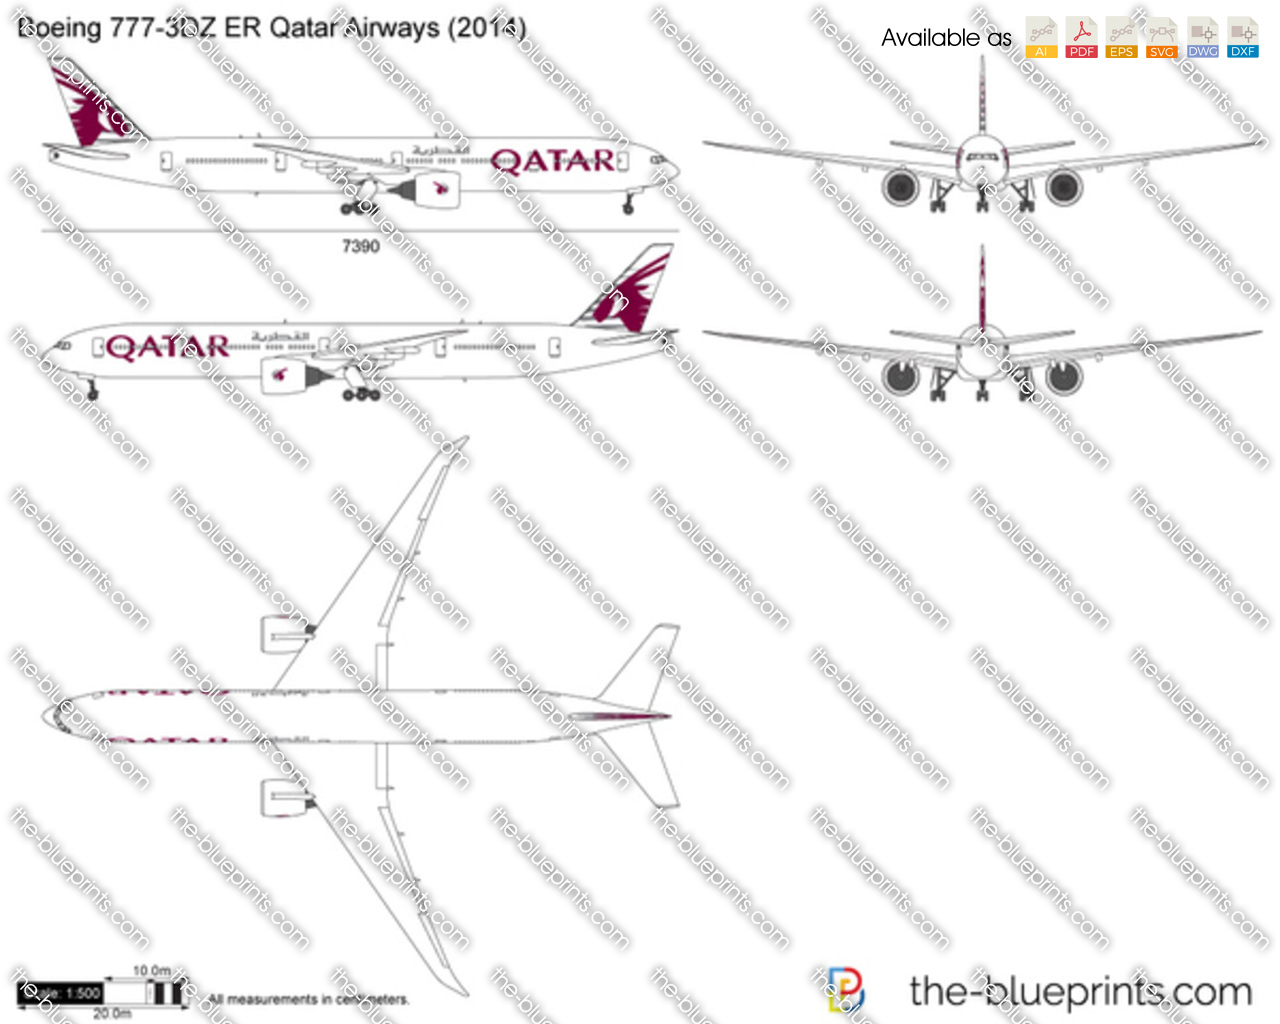 2018 Boeing 777-3DZ ER Qatar Airways